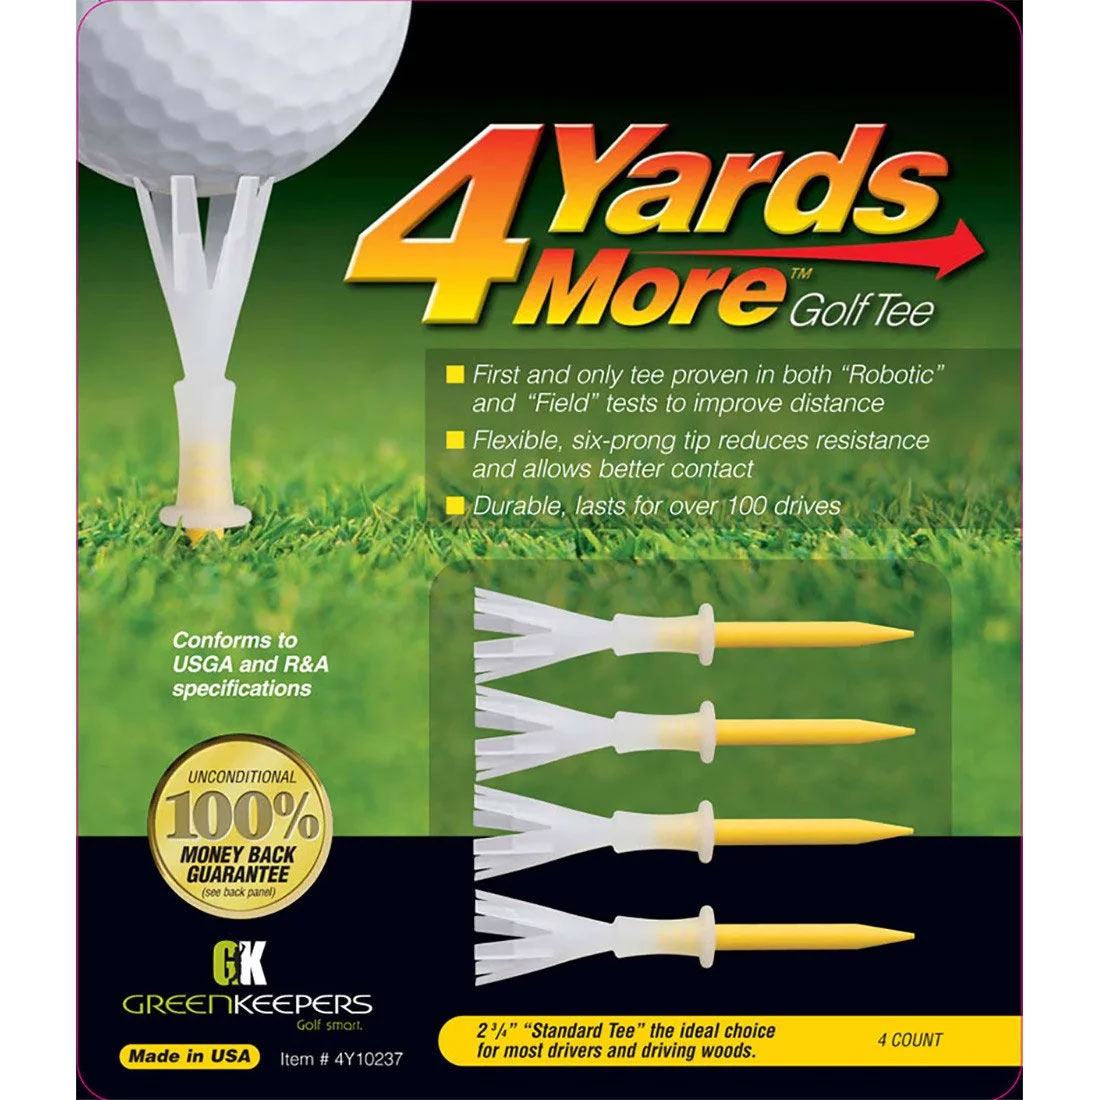 Green Keepers 4 Yards More 2 3/4 Golf Tees